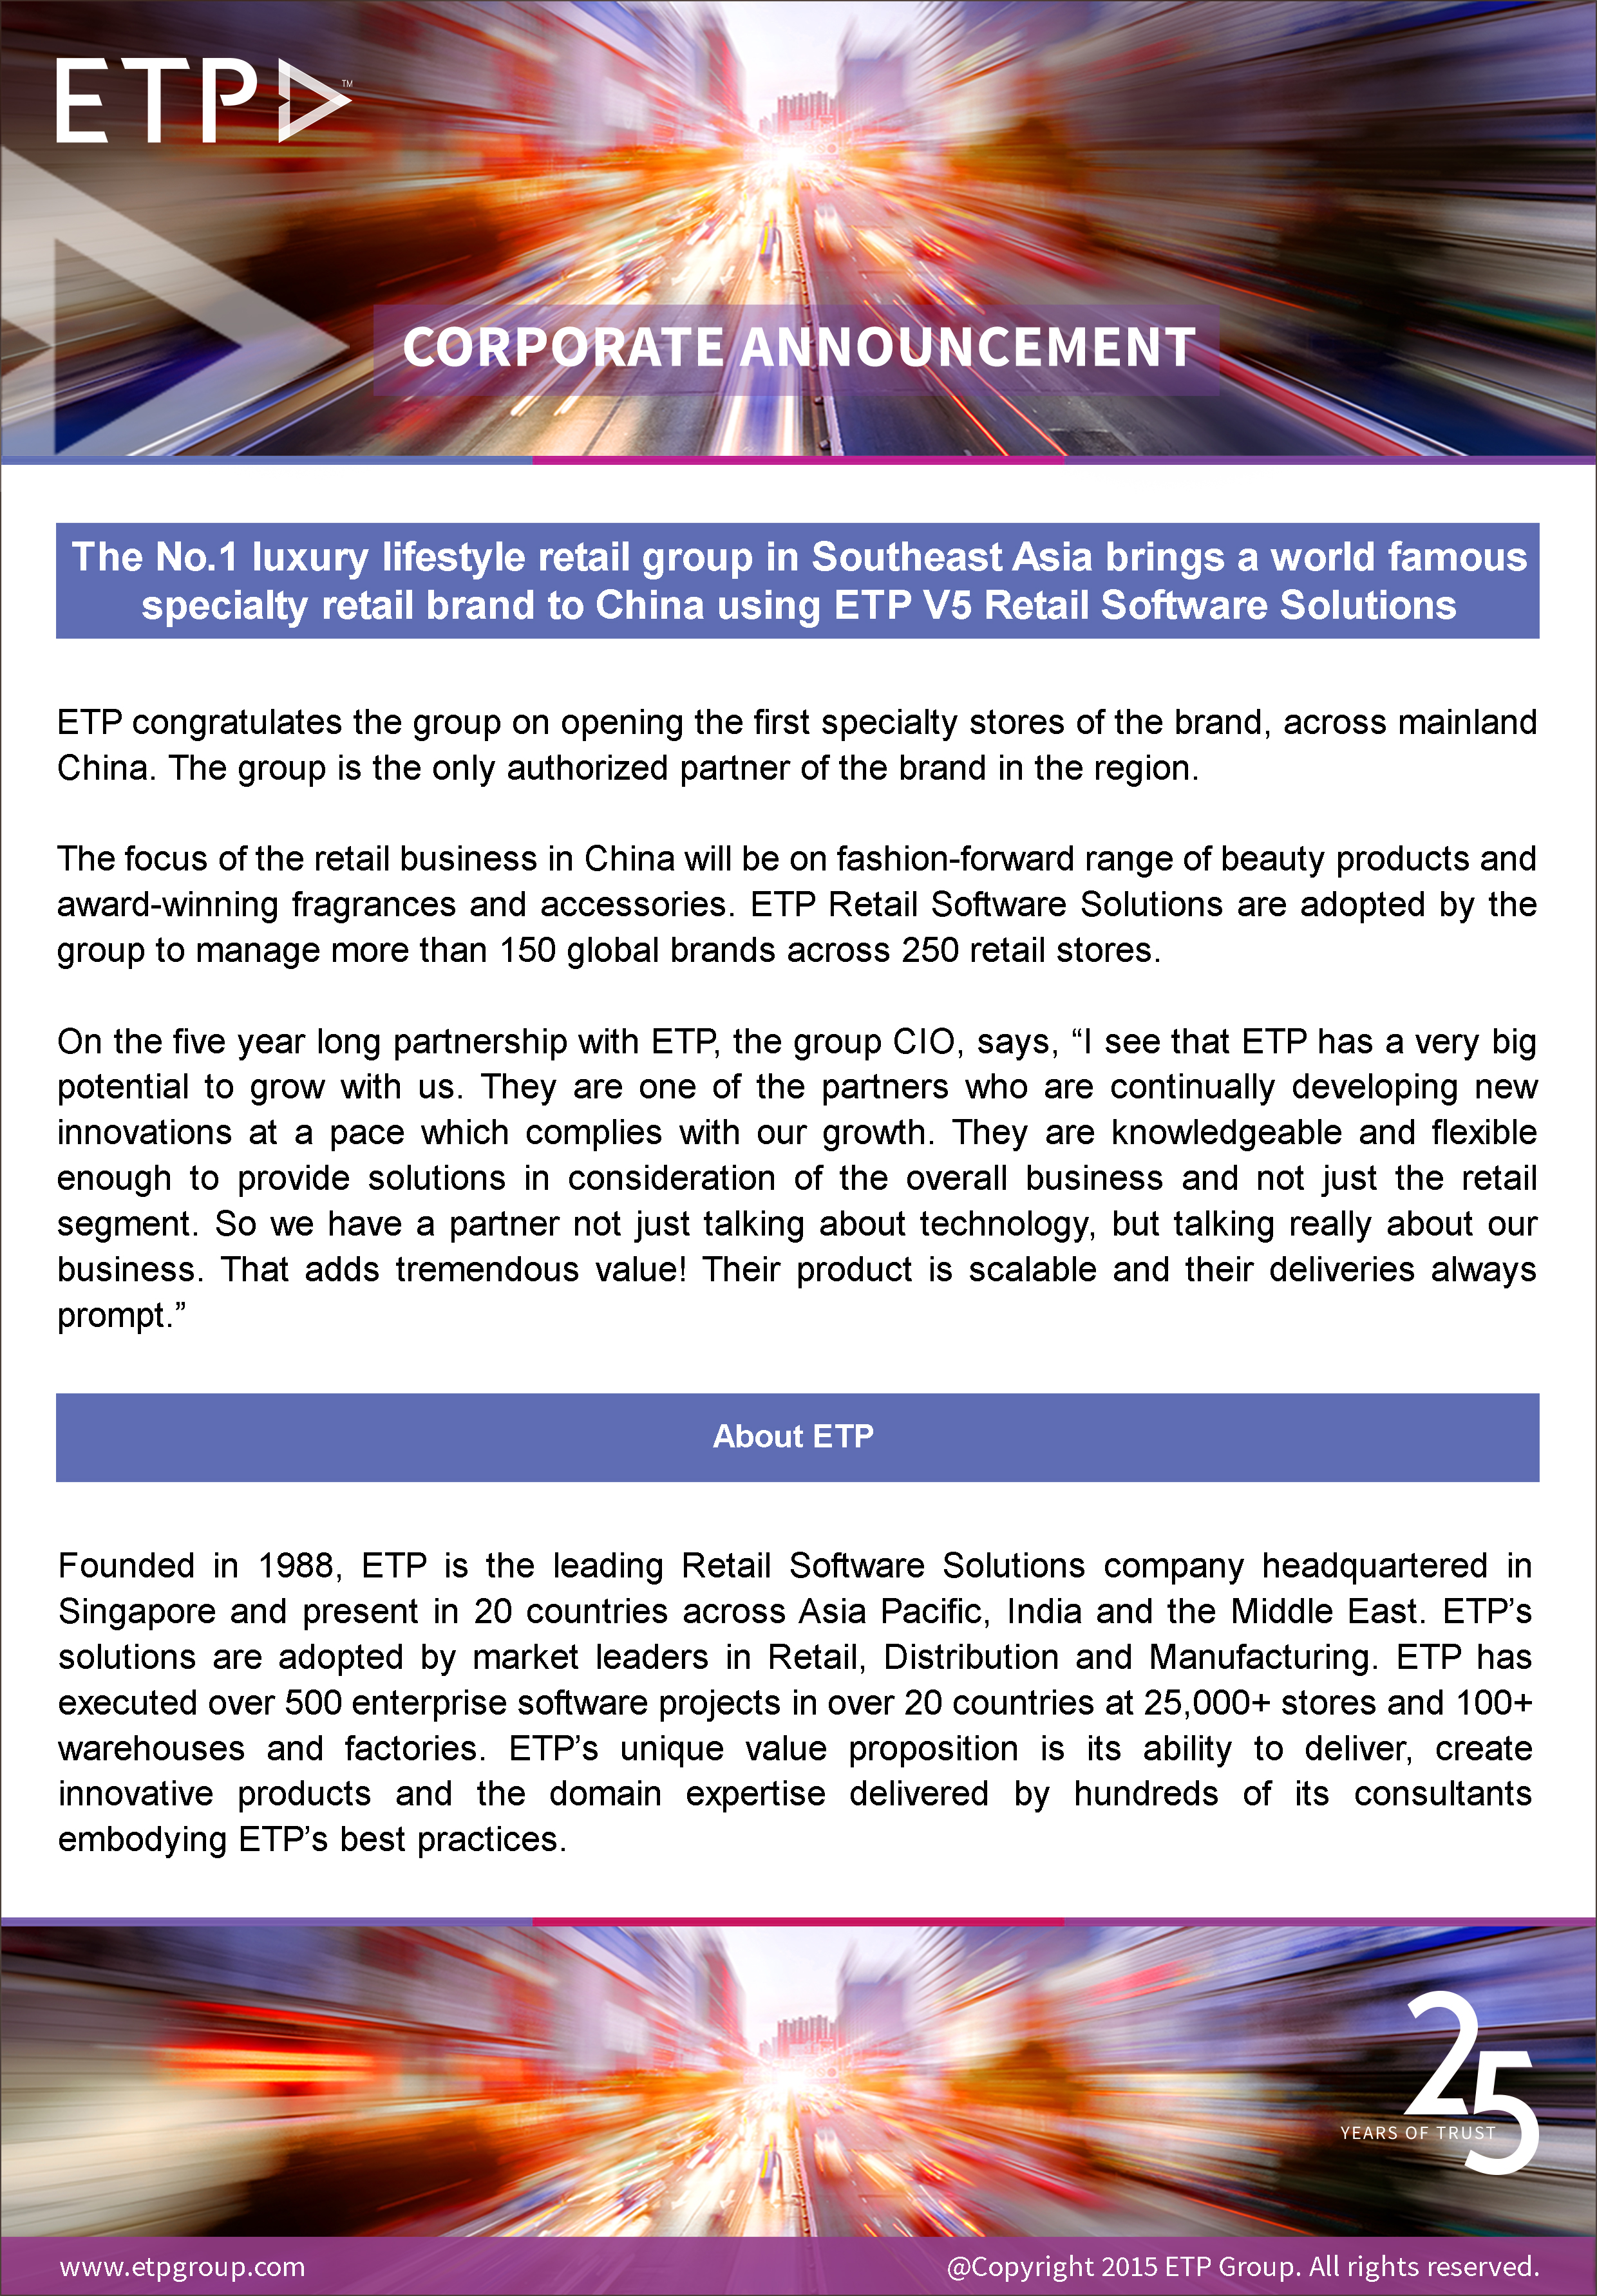 The No. 1 luxury lifestyle group in Southeast Asia brings a world famous specialty retail brand to China using ETP V5 Retail Software Solutions